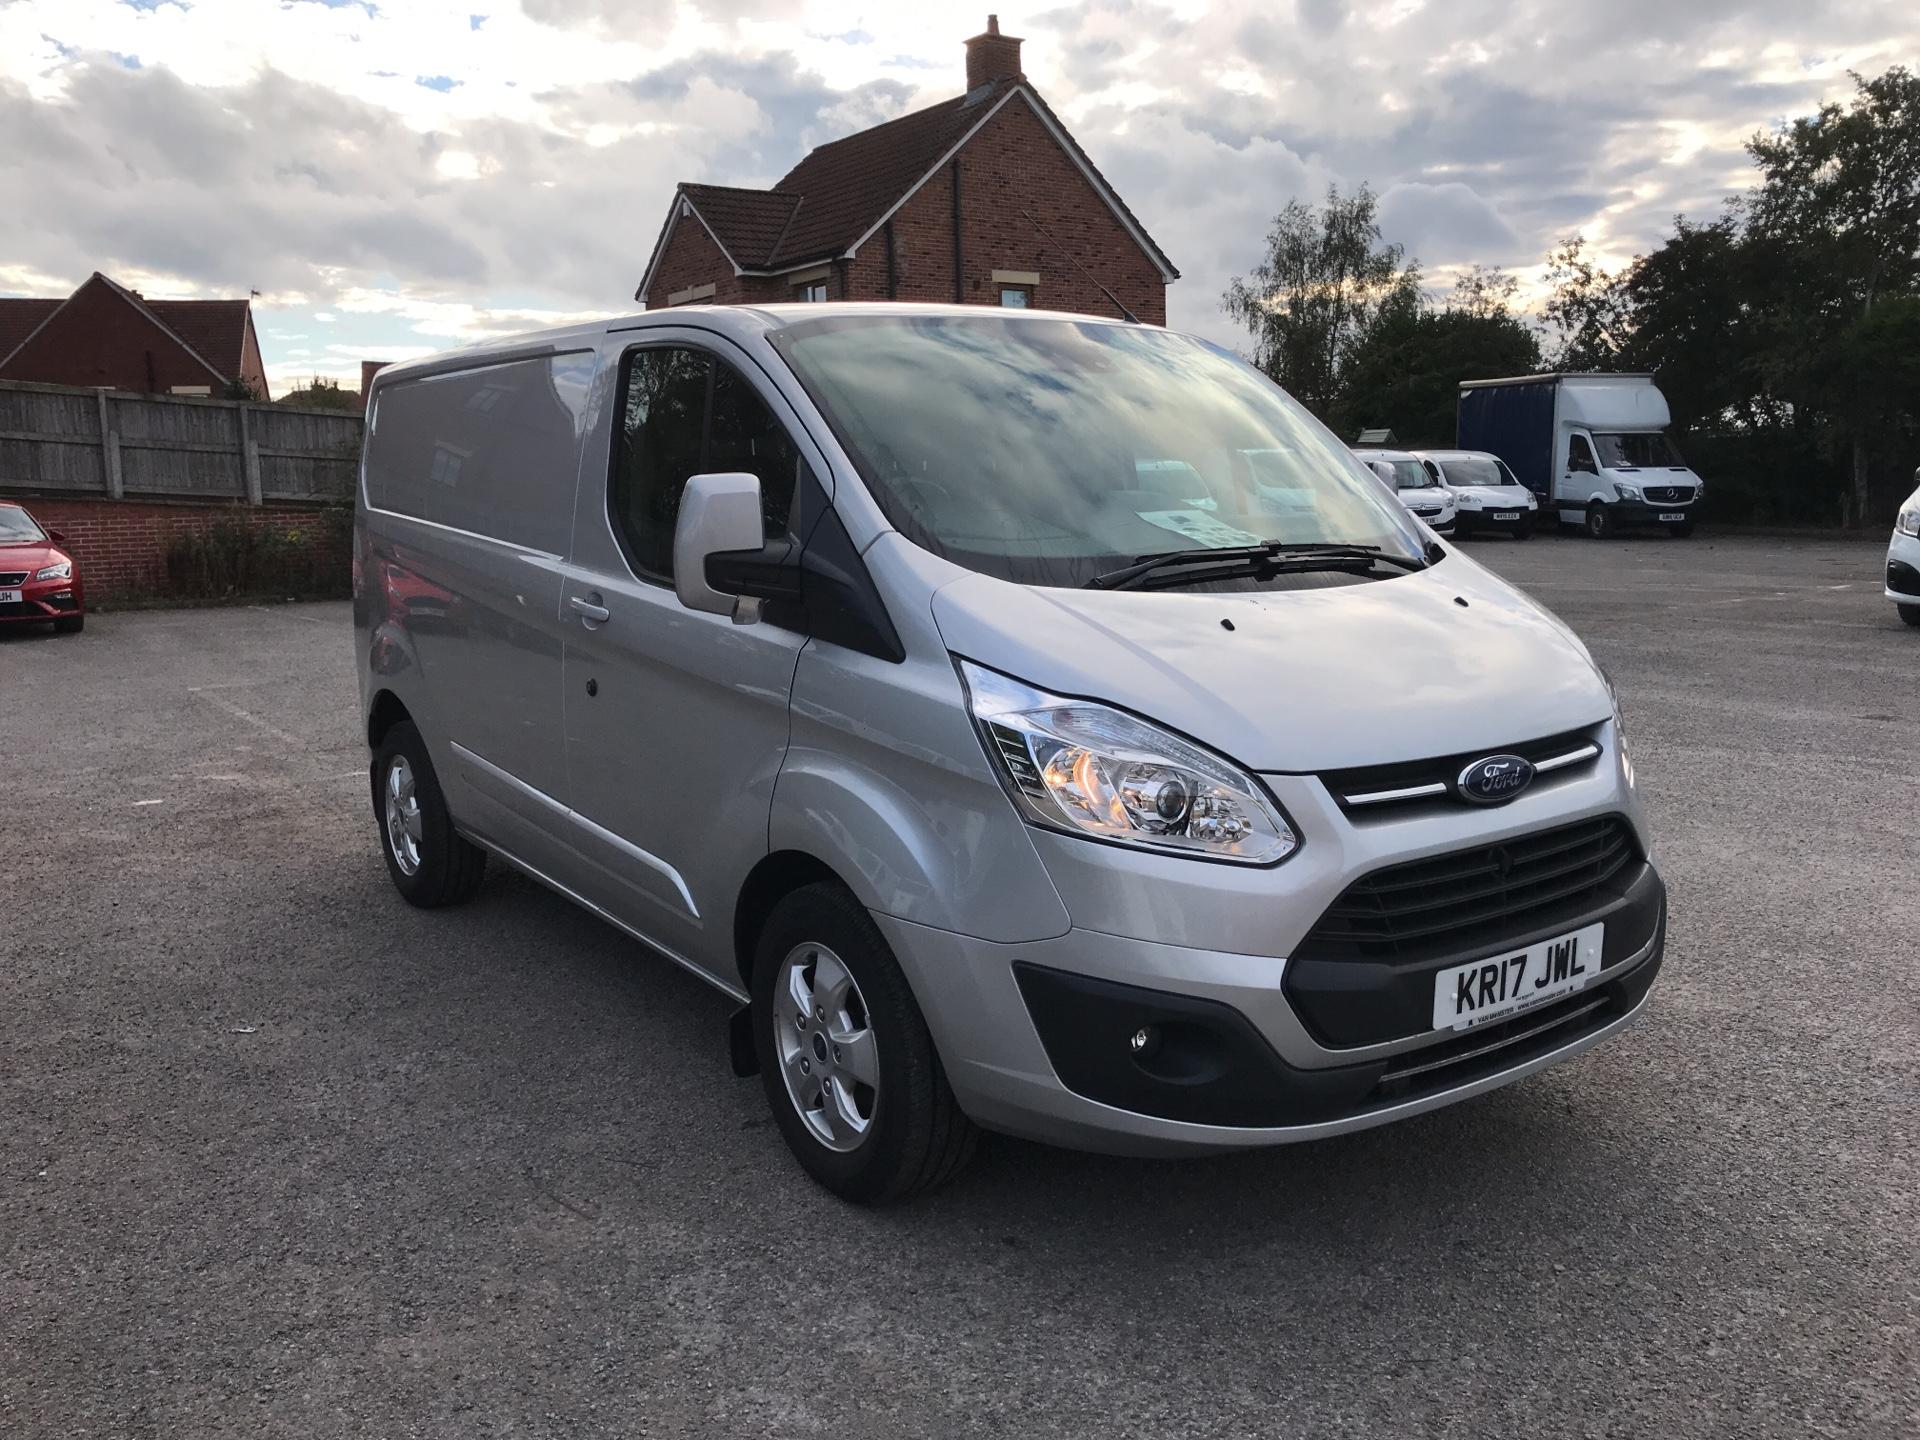 2017 Ford Transit Custom 270 L1 DIESEL FWD 2.0 TDCI 130PS LOW ROOF LIMITED VAN EURO 6